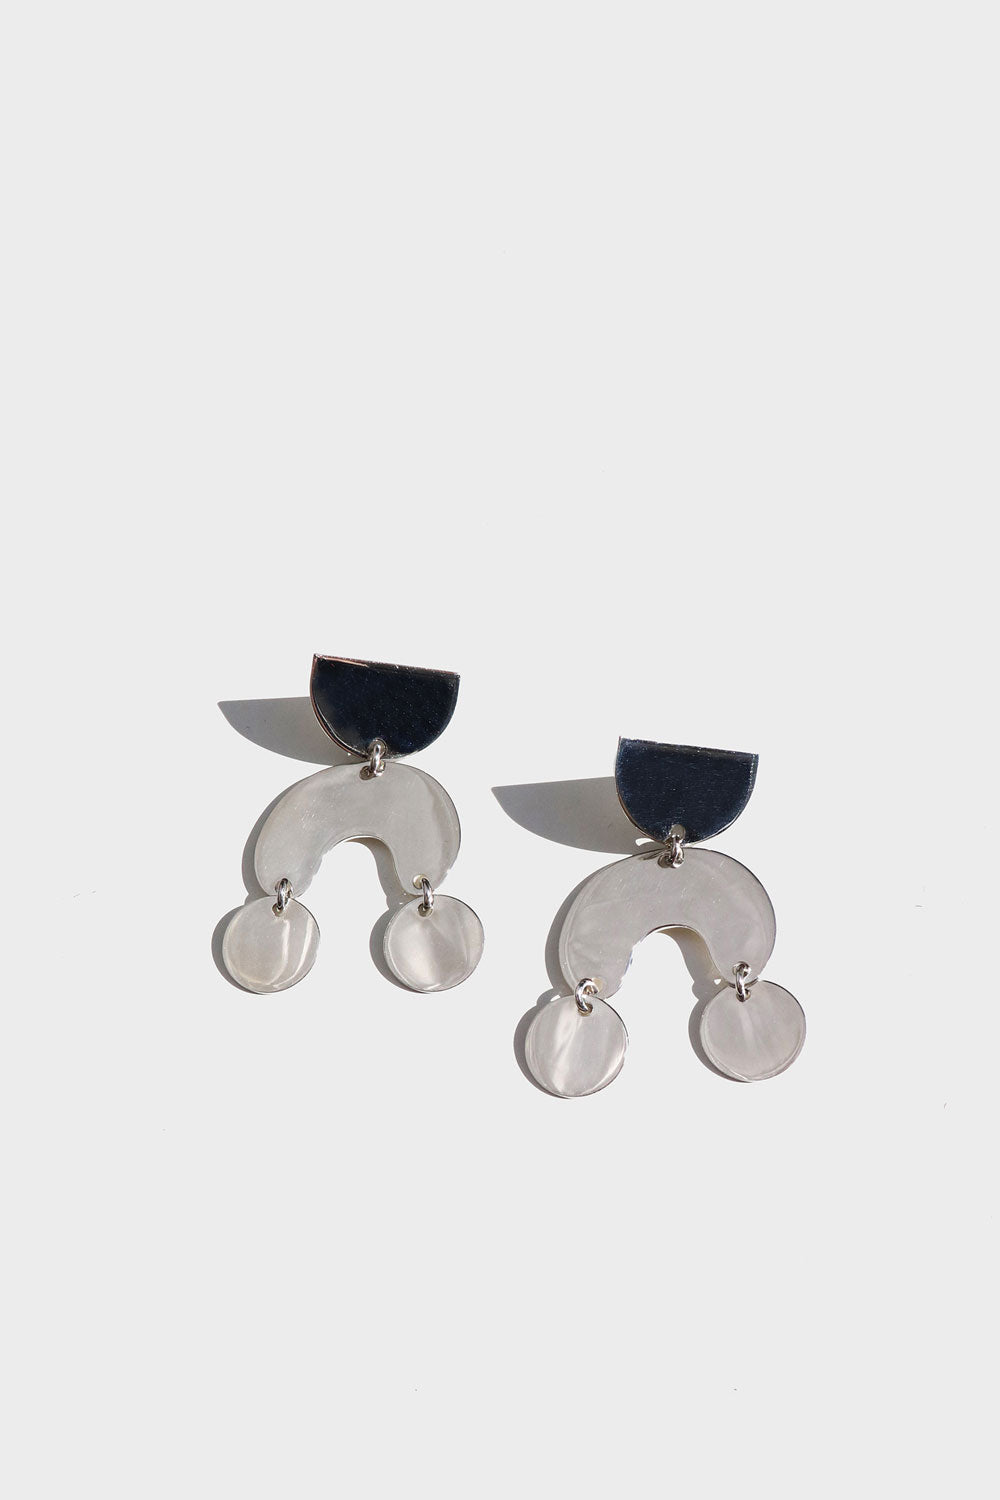 Modern Weaving Mini Moondancer Earrings in Sterling Silver - Vert & Vogue